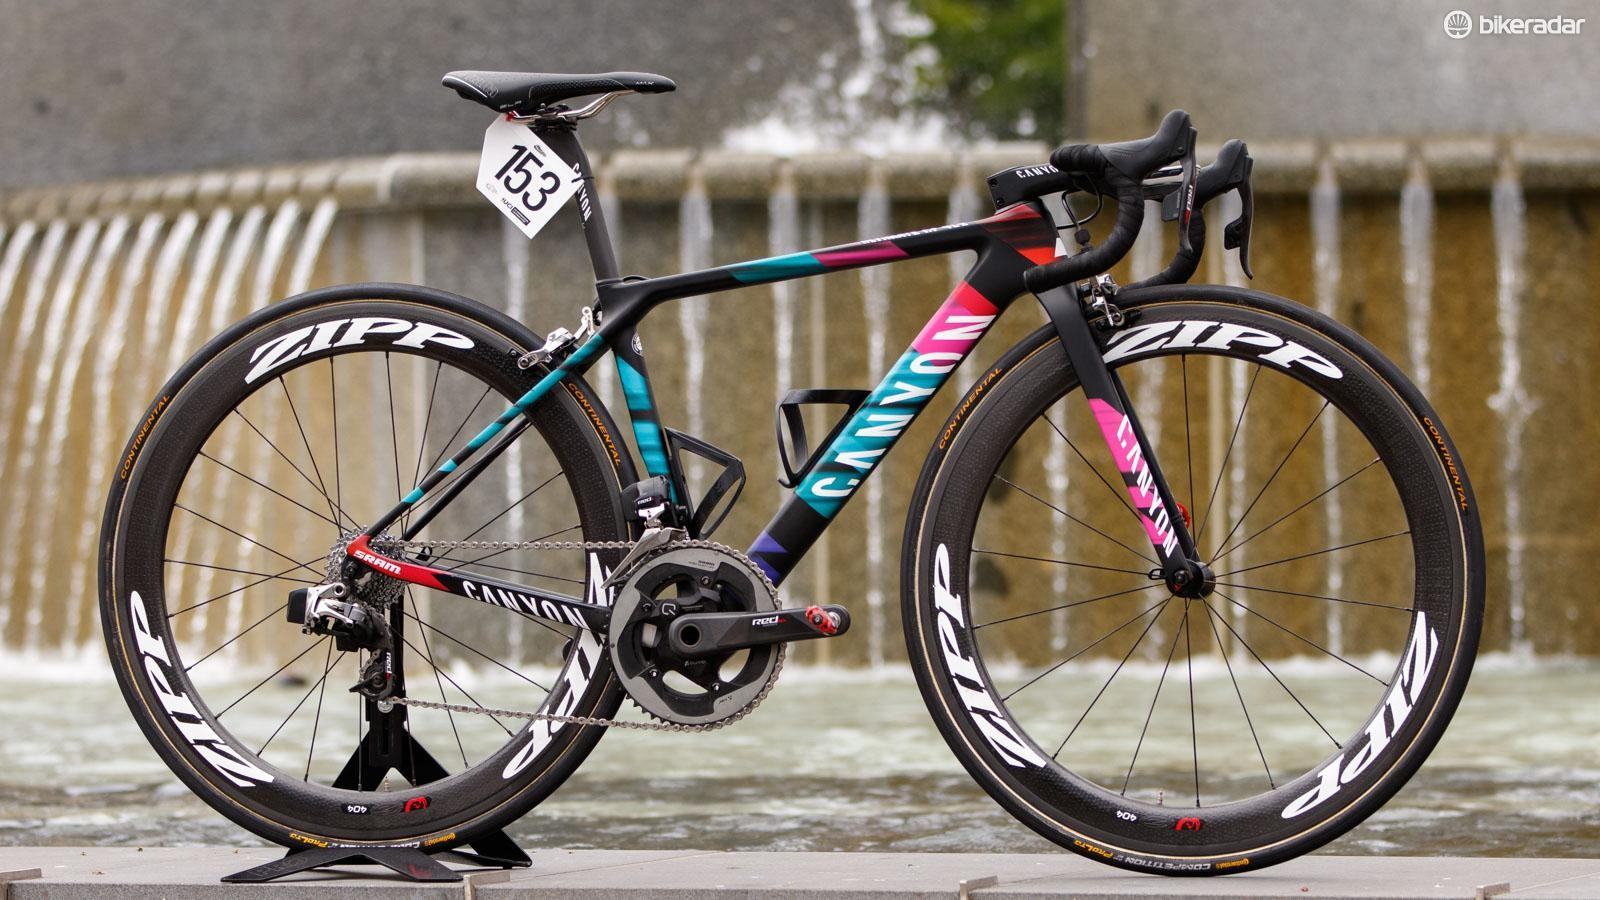 Tiffany Cromwell's 2016 Canyon Ultimate CF SLX with SRAM eTap. The bike of the new Canyon//SRAM Pro Cycling team